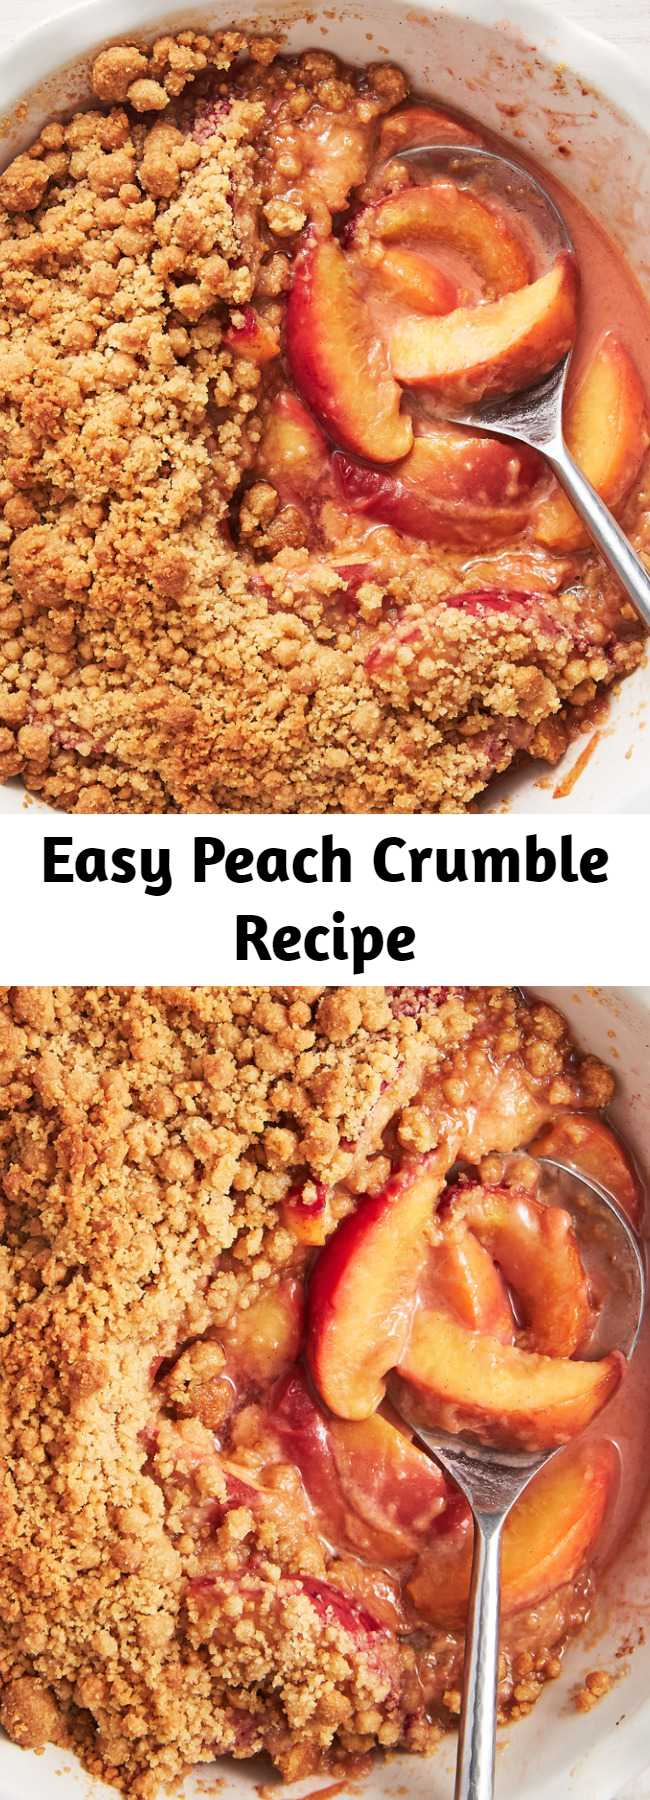 Easy Peach Crumble Recipe - This simple Peach Crumble from Delish.com makes the most of what the summer season has to offer: a little cinnamon and ground ginger goes a long, sweet way!